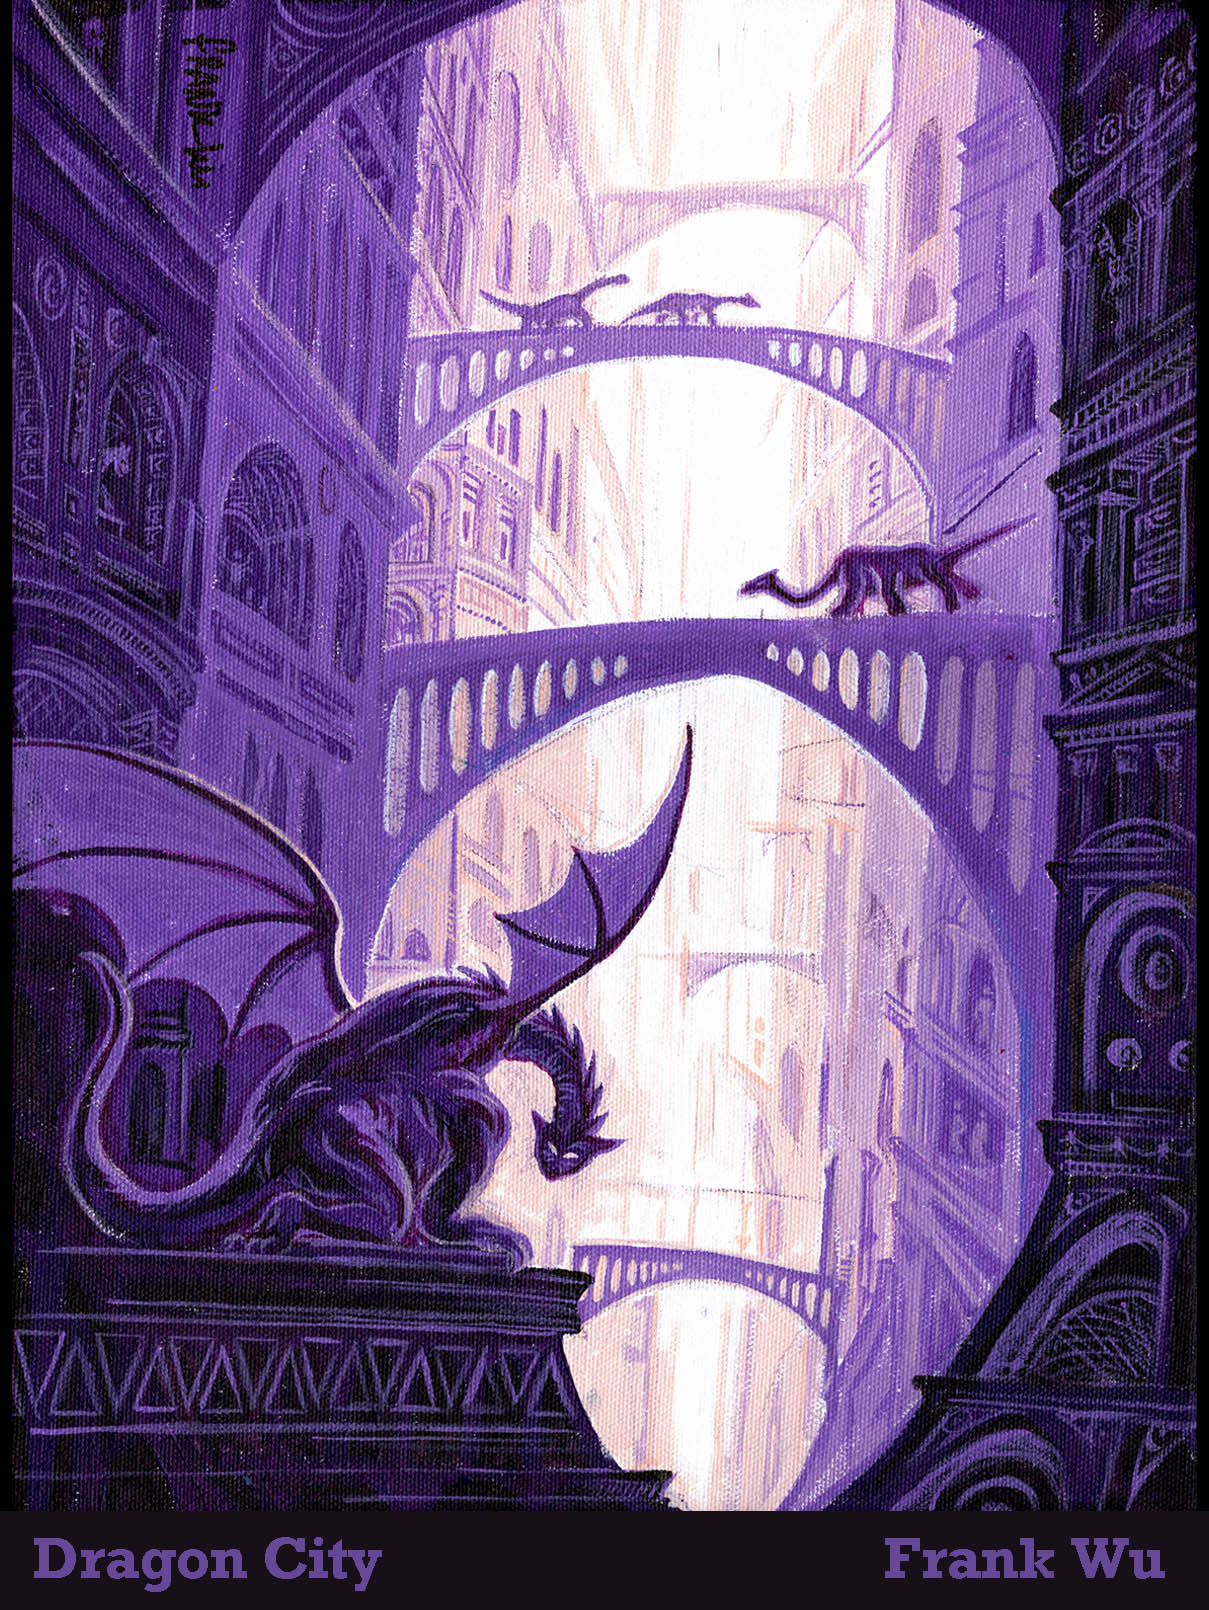 Dragon City. Unpublished. Small acrylic painting.